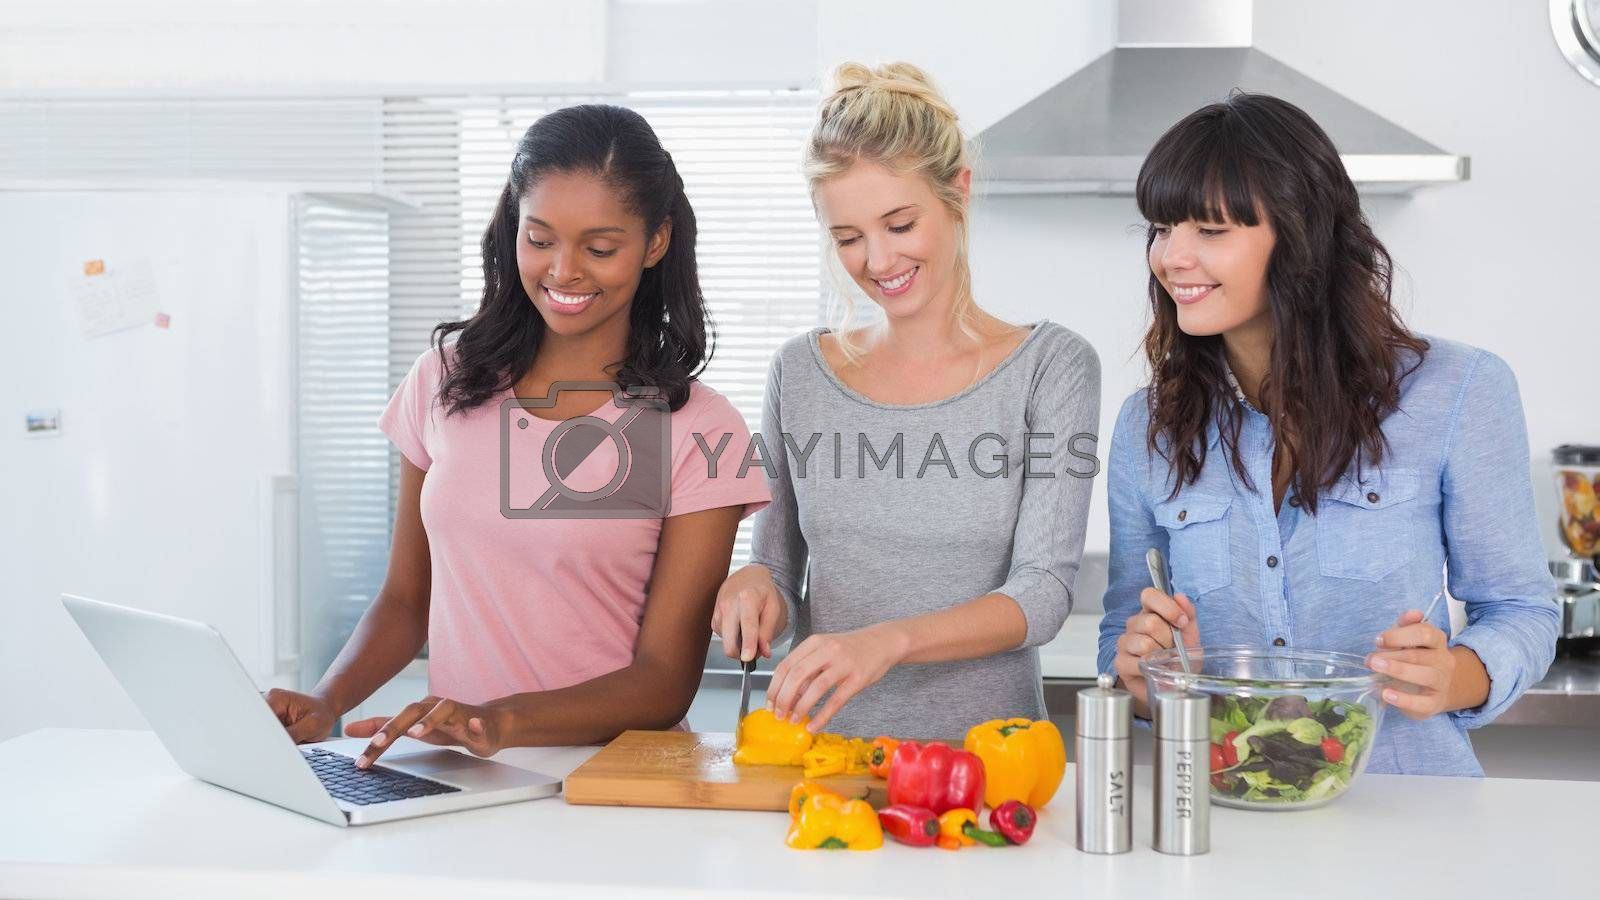 Happy friends making salad and using laptop for recipe at home in kitchen